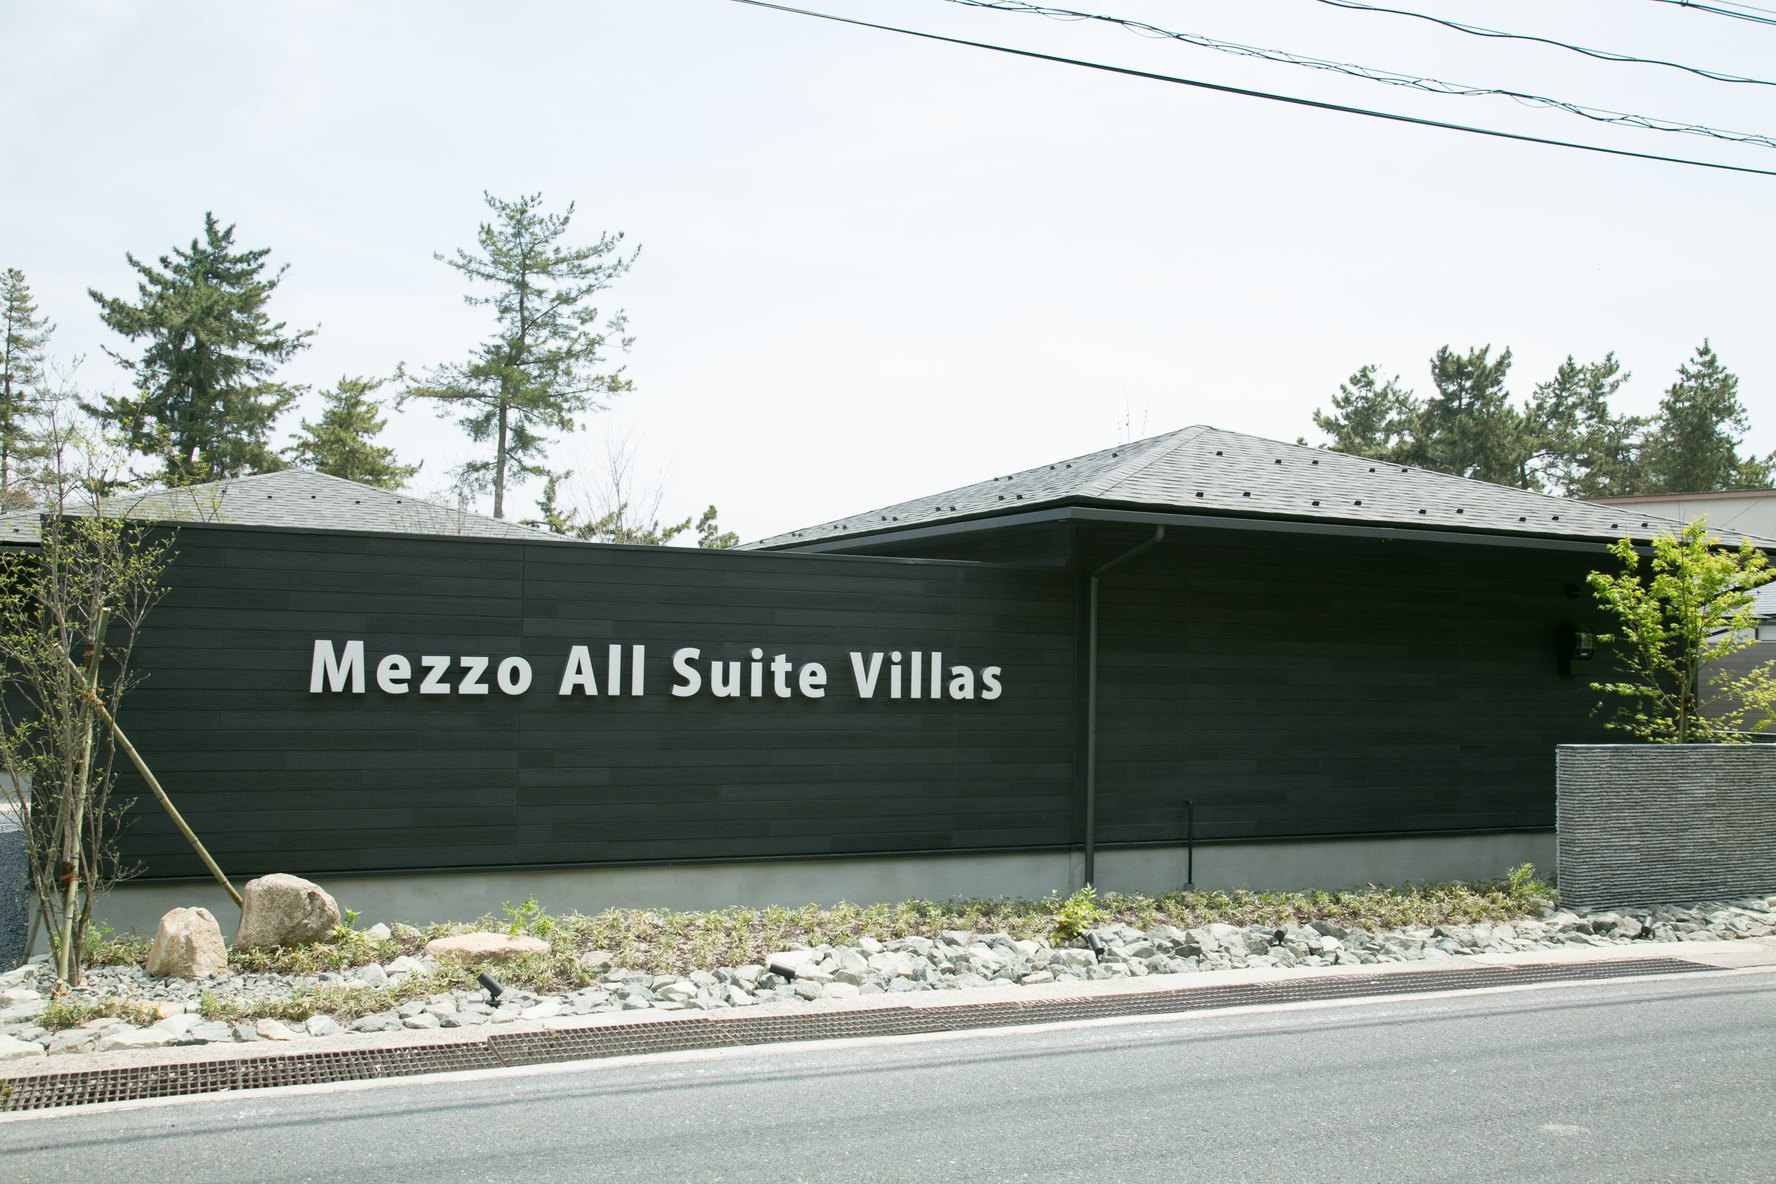 Mezzo ALL SUITE VILLASの施設画像